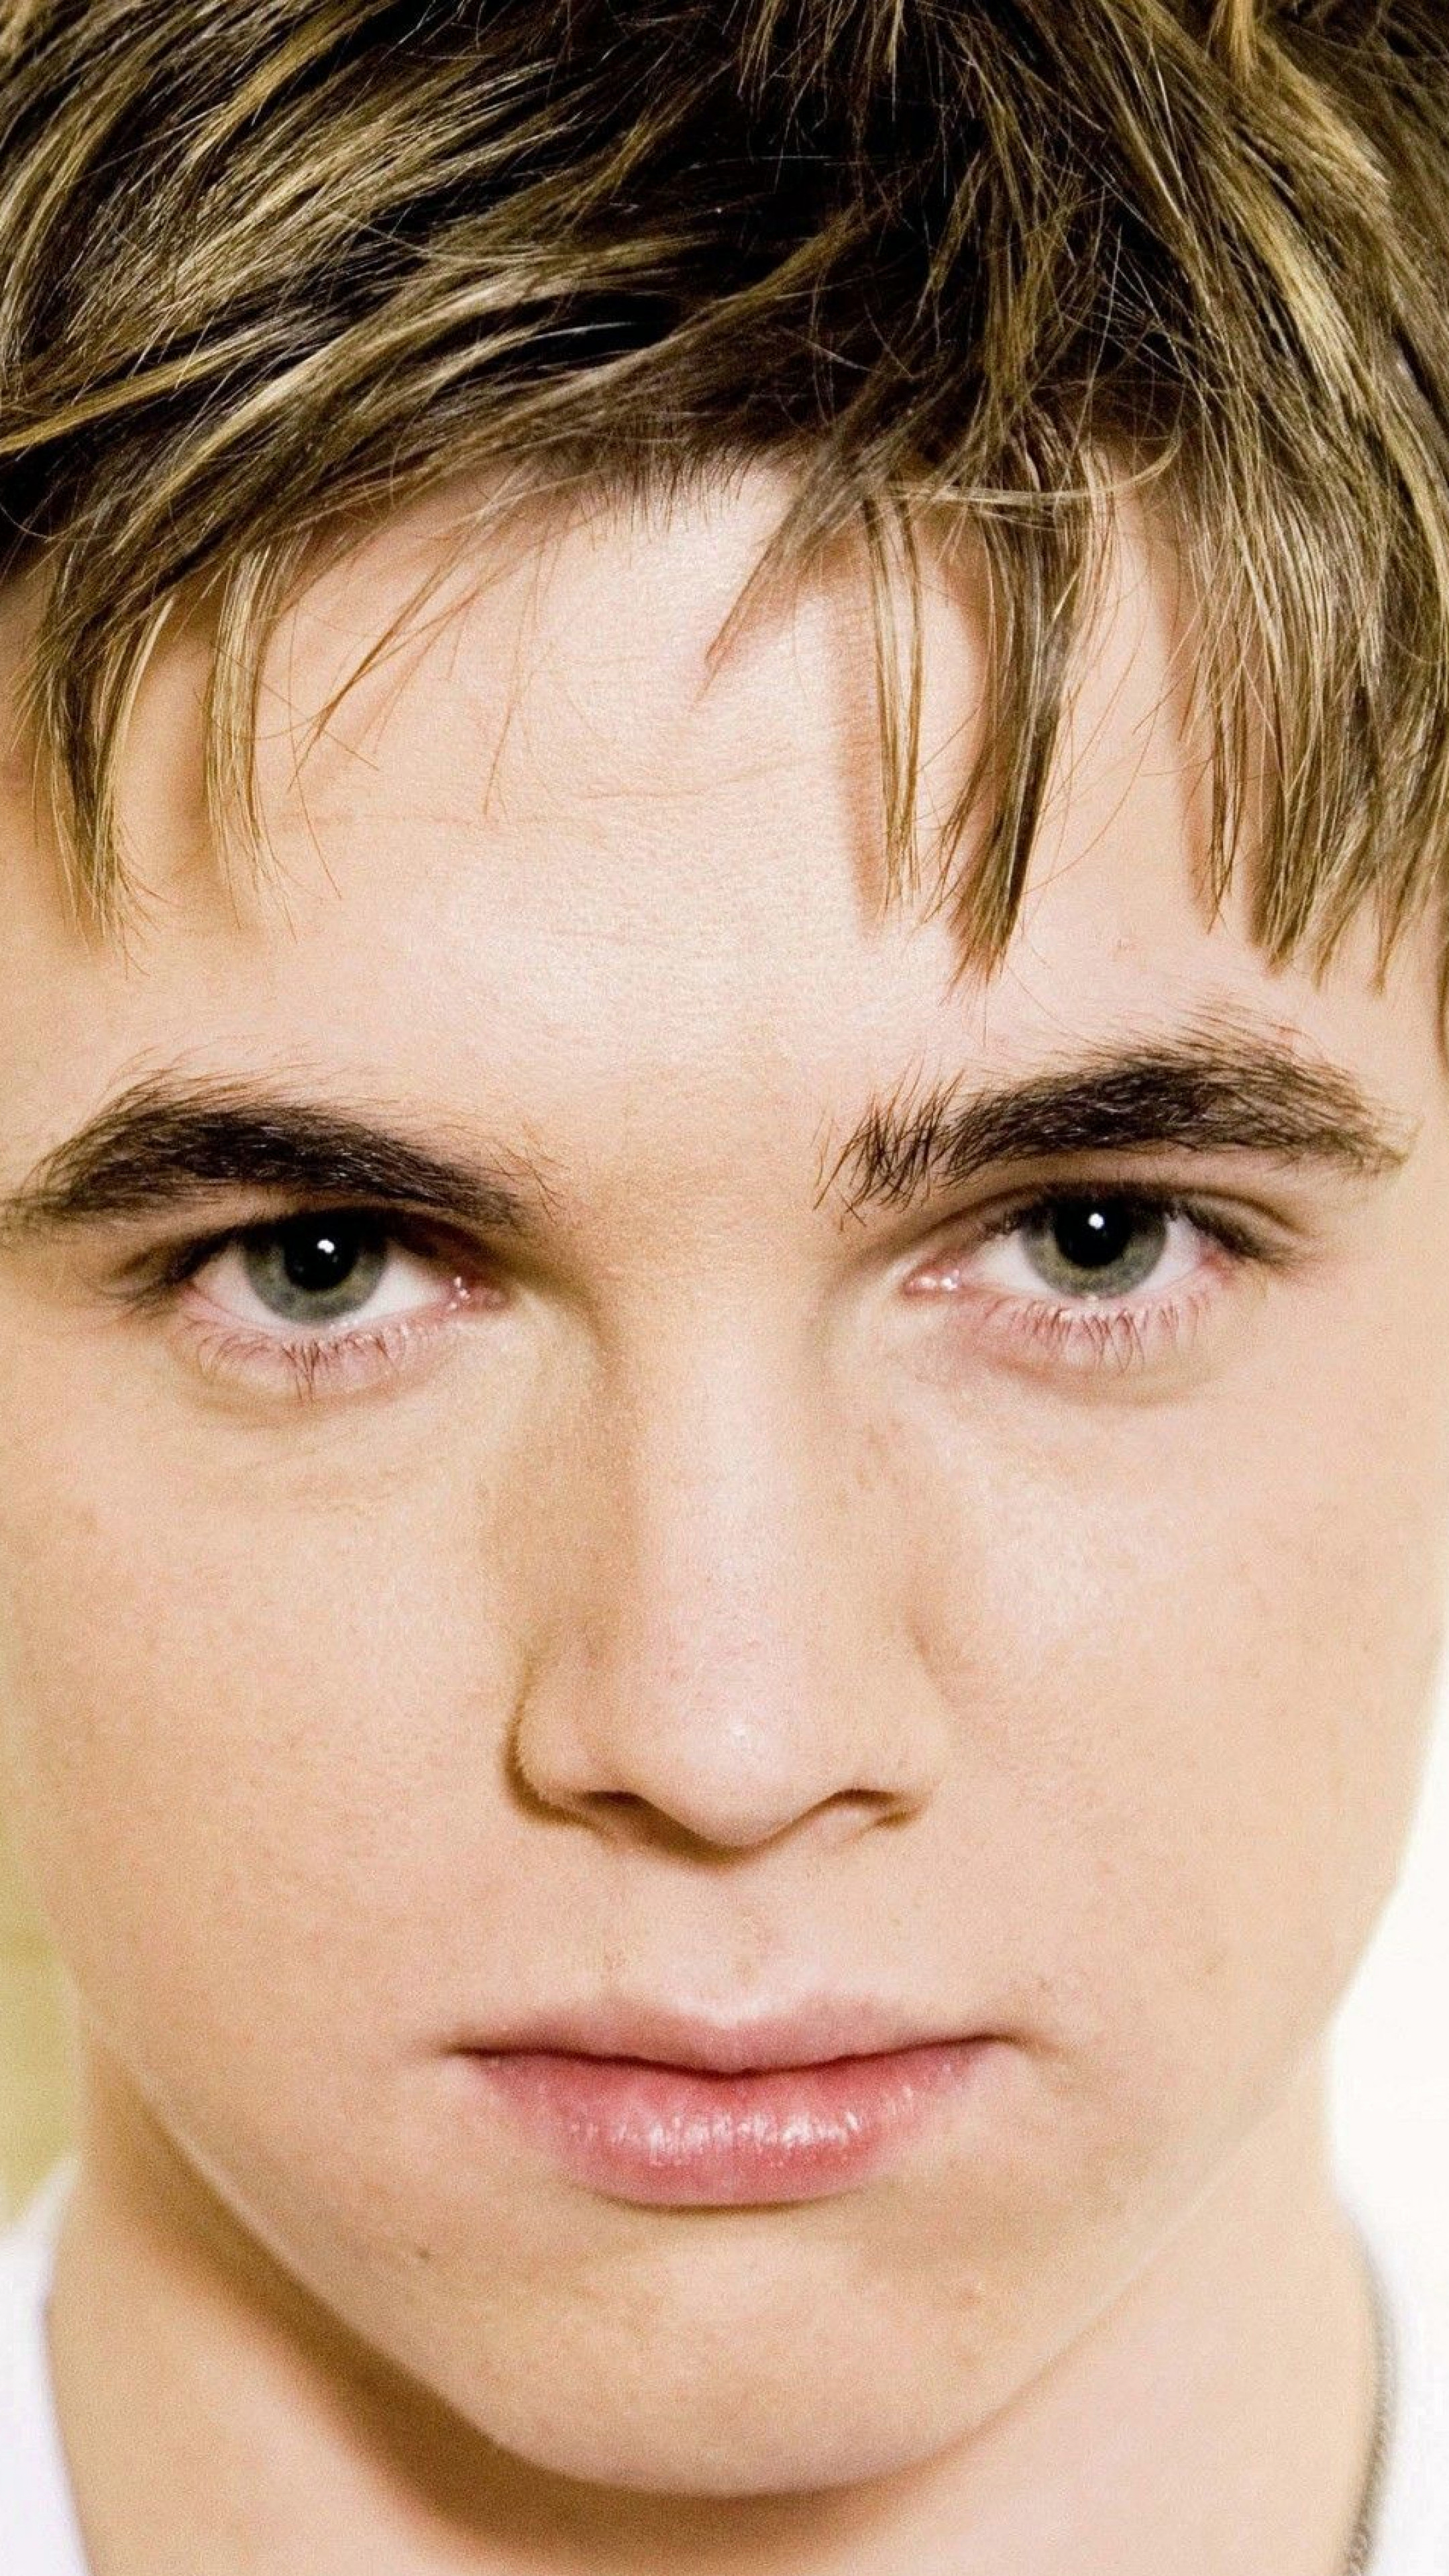 2160x3840  Wallpaper jesse mccartney, actor, face, look